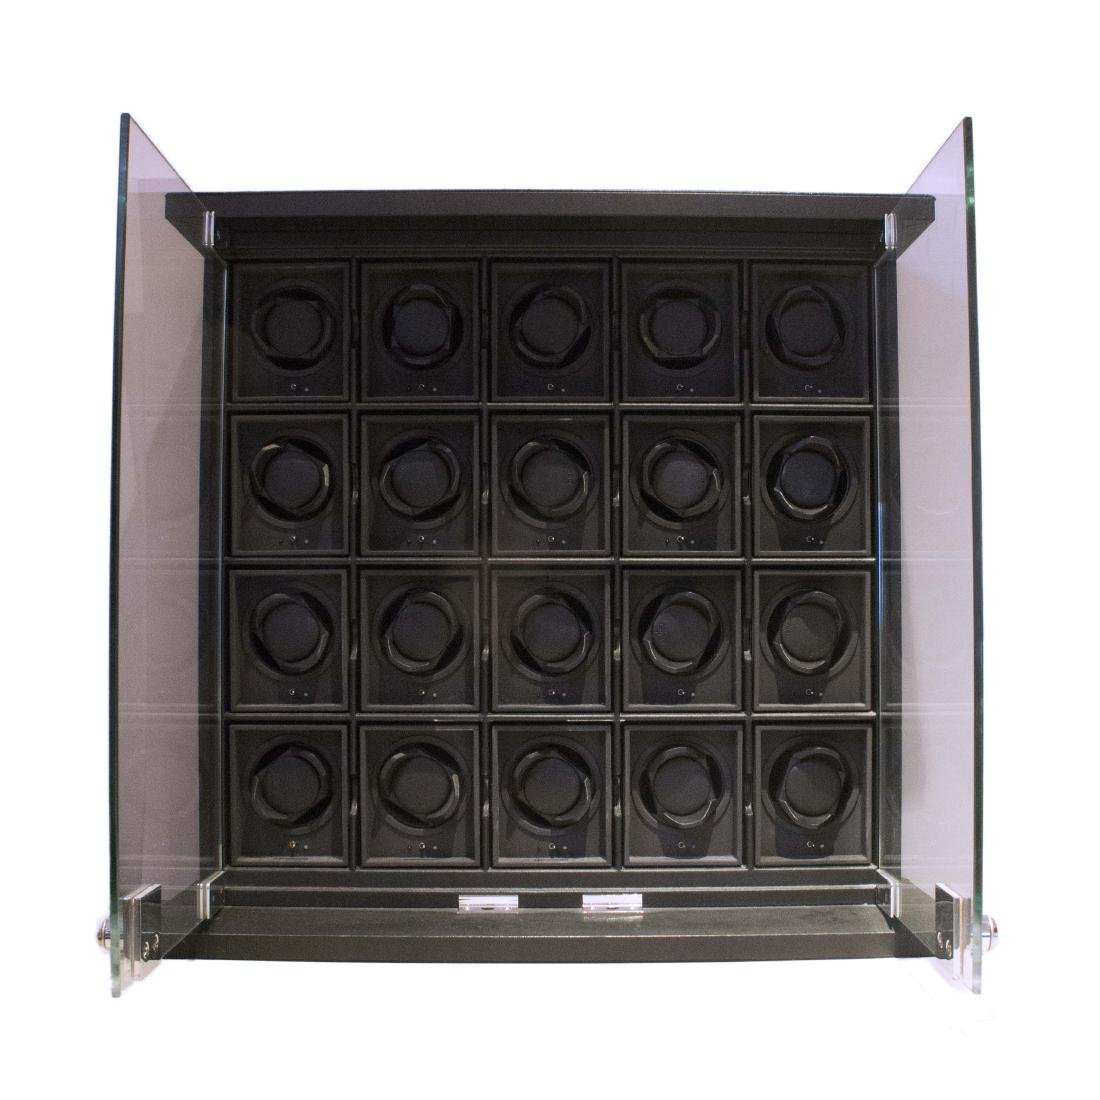 A LEATHER 20 MODULE WATCH WINDER CABINETBY UNDERWOOD